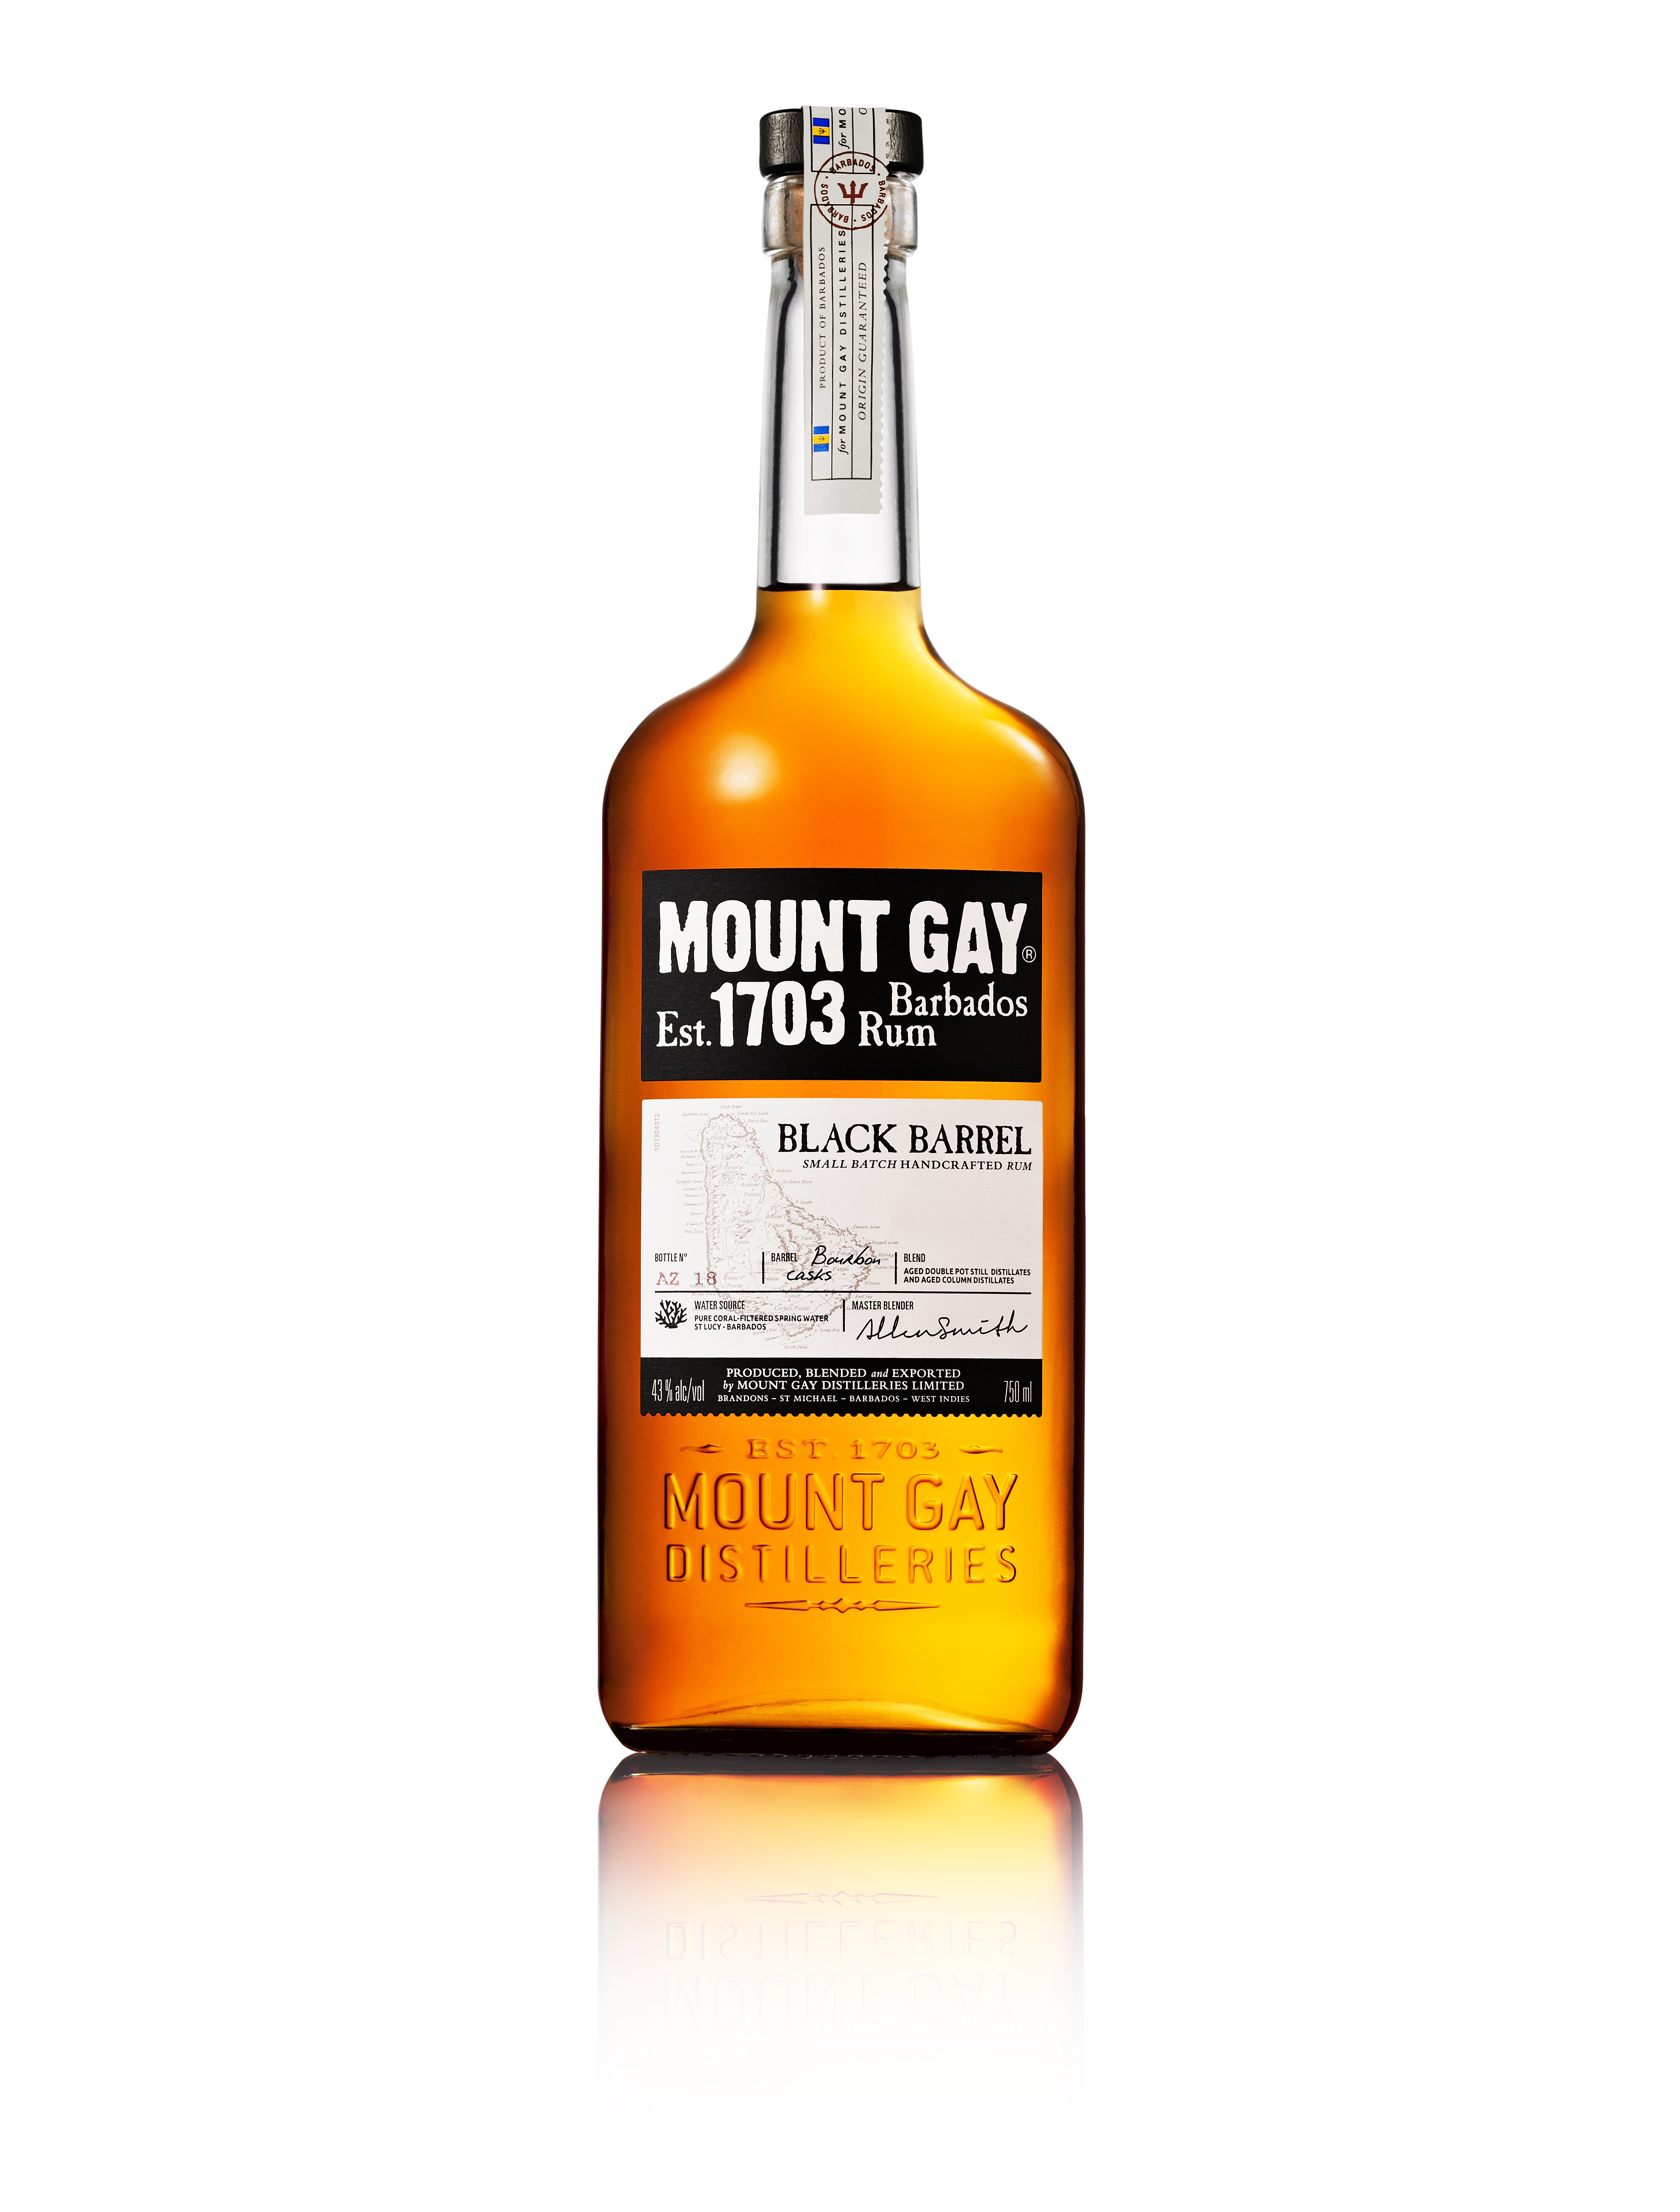 from Reese mount gay rum awards